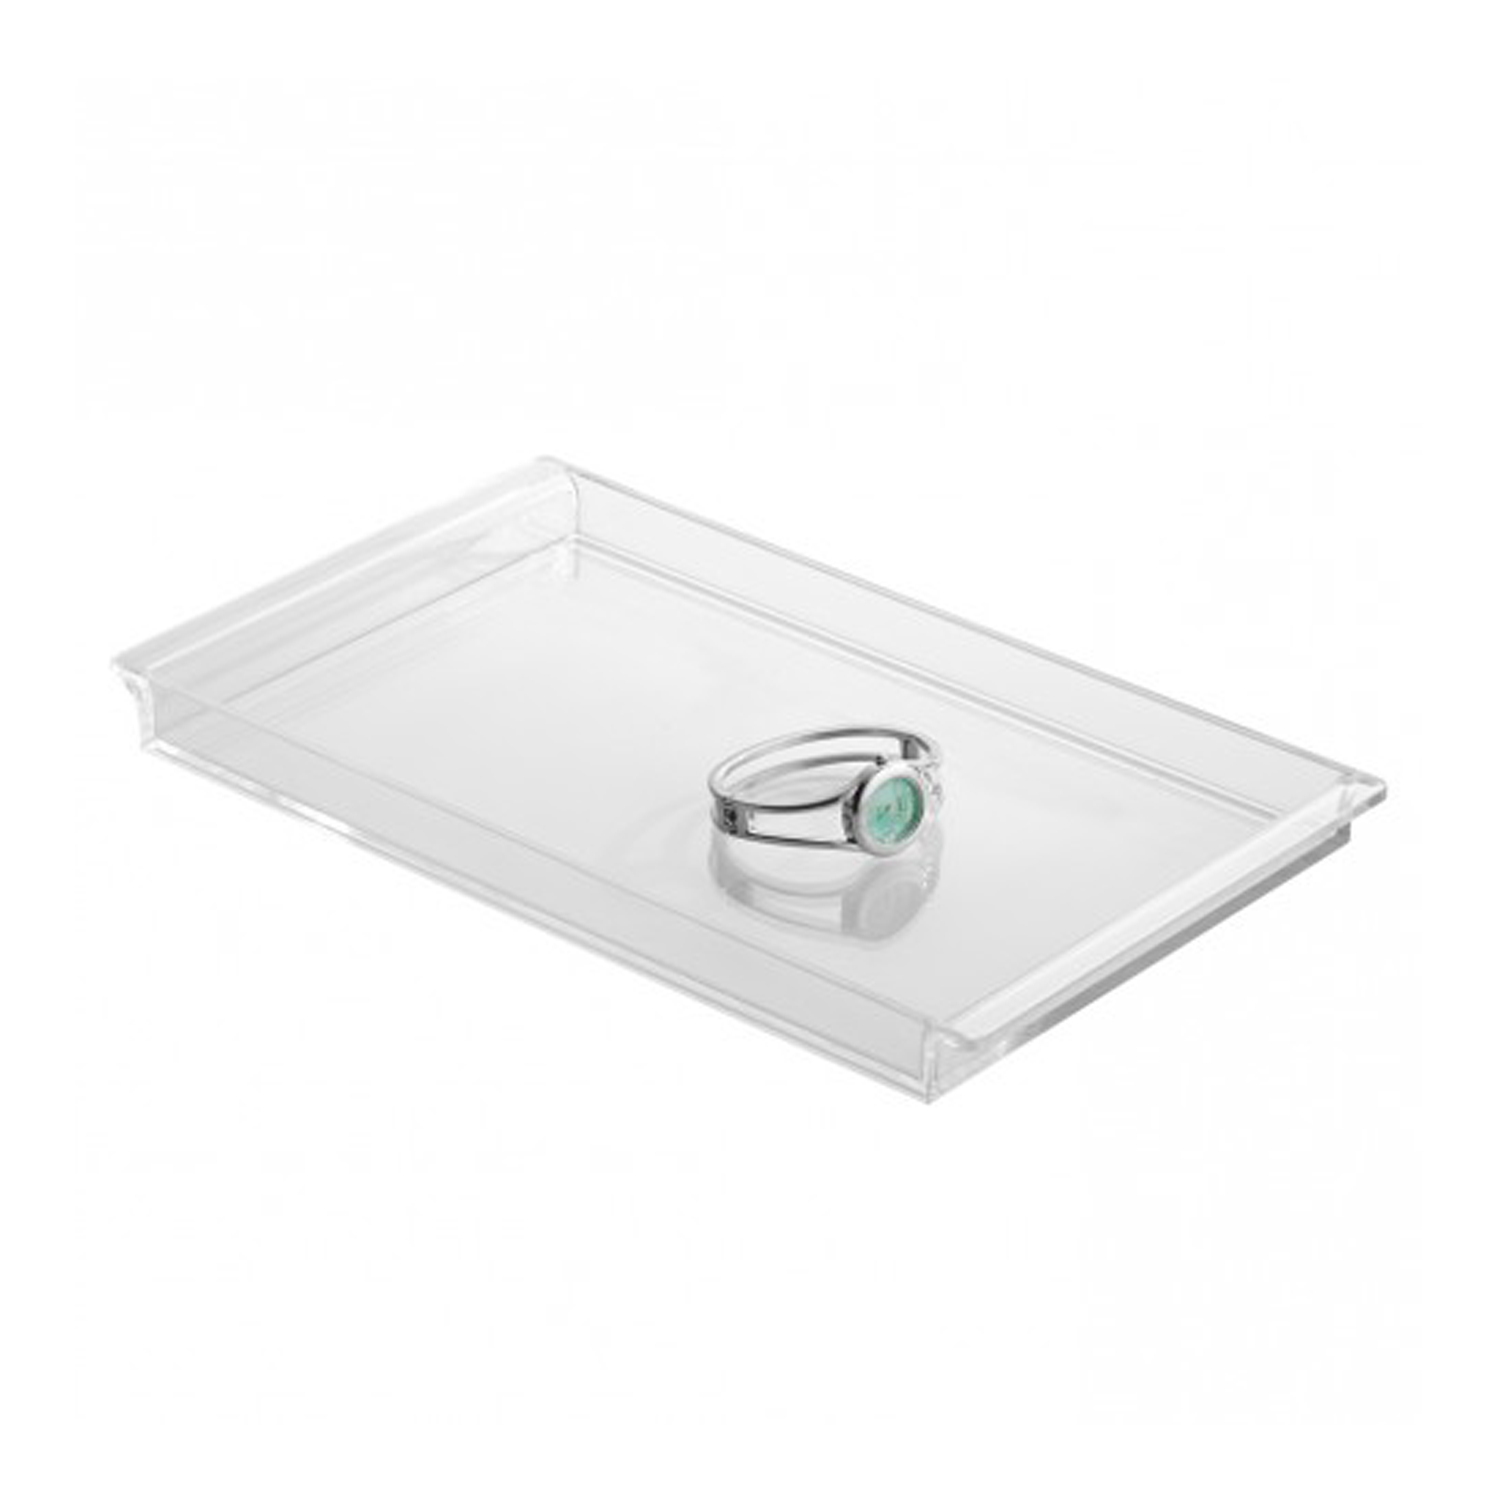 Clear clarity vanity tray available from storables everything